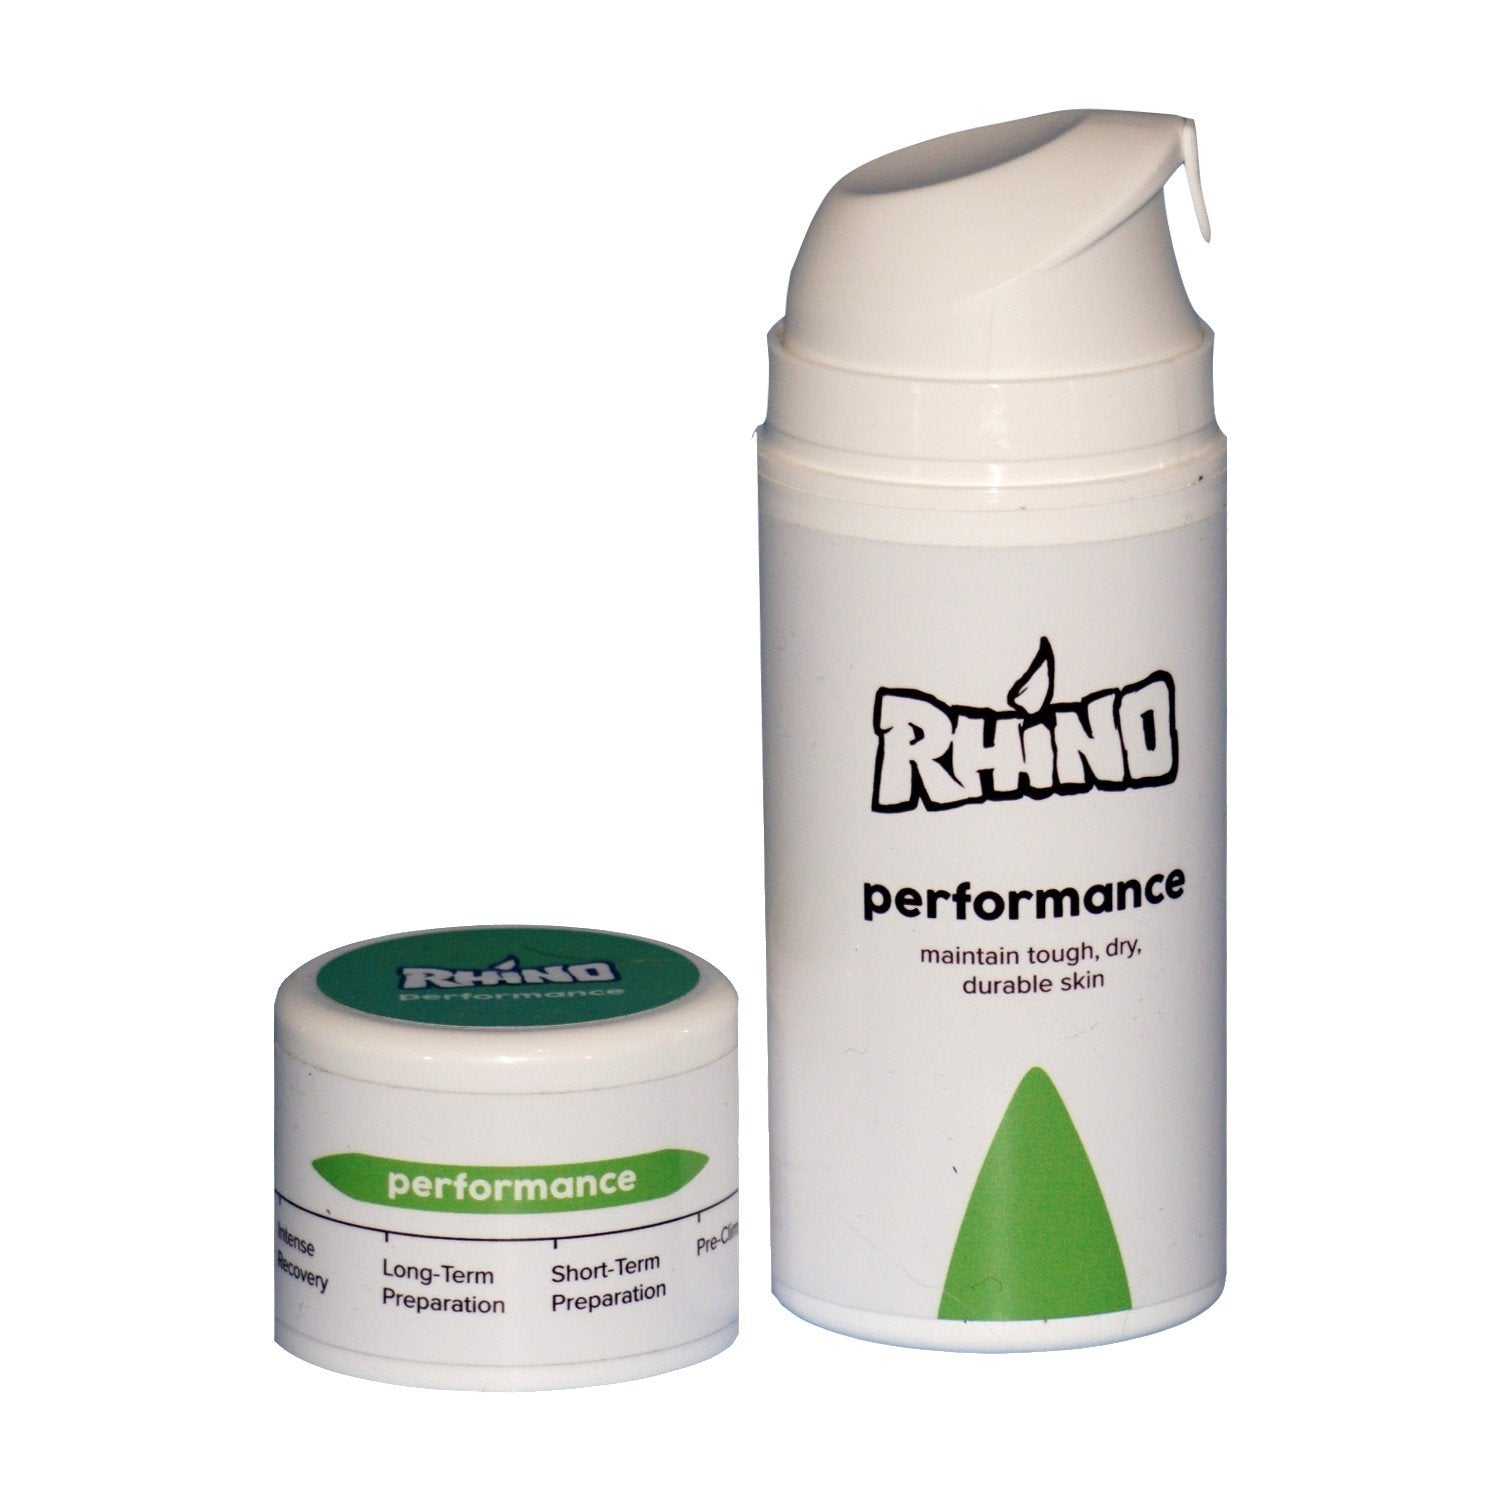 Rhino Skin Solutions PERFORMANCE (1.7oz/48ml)